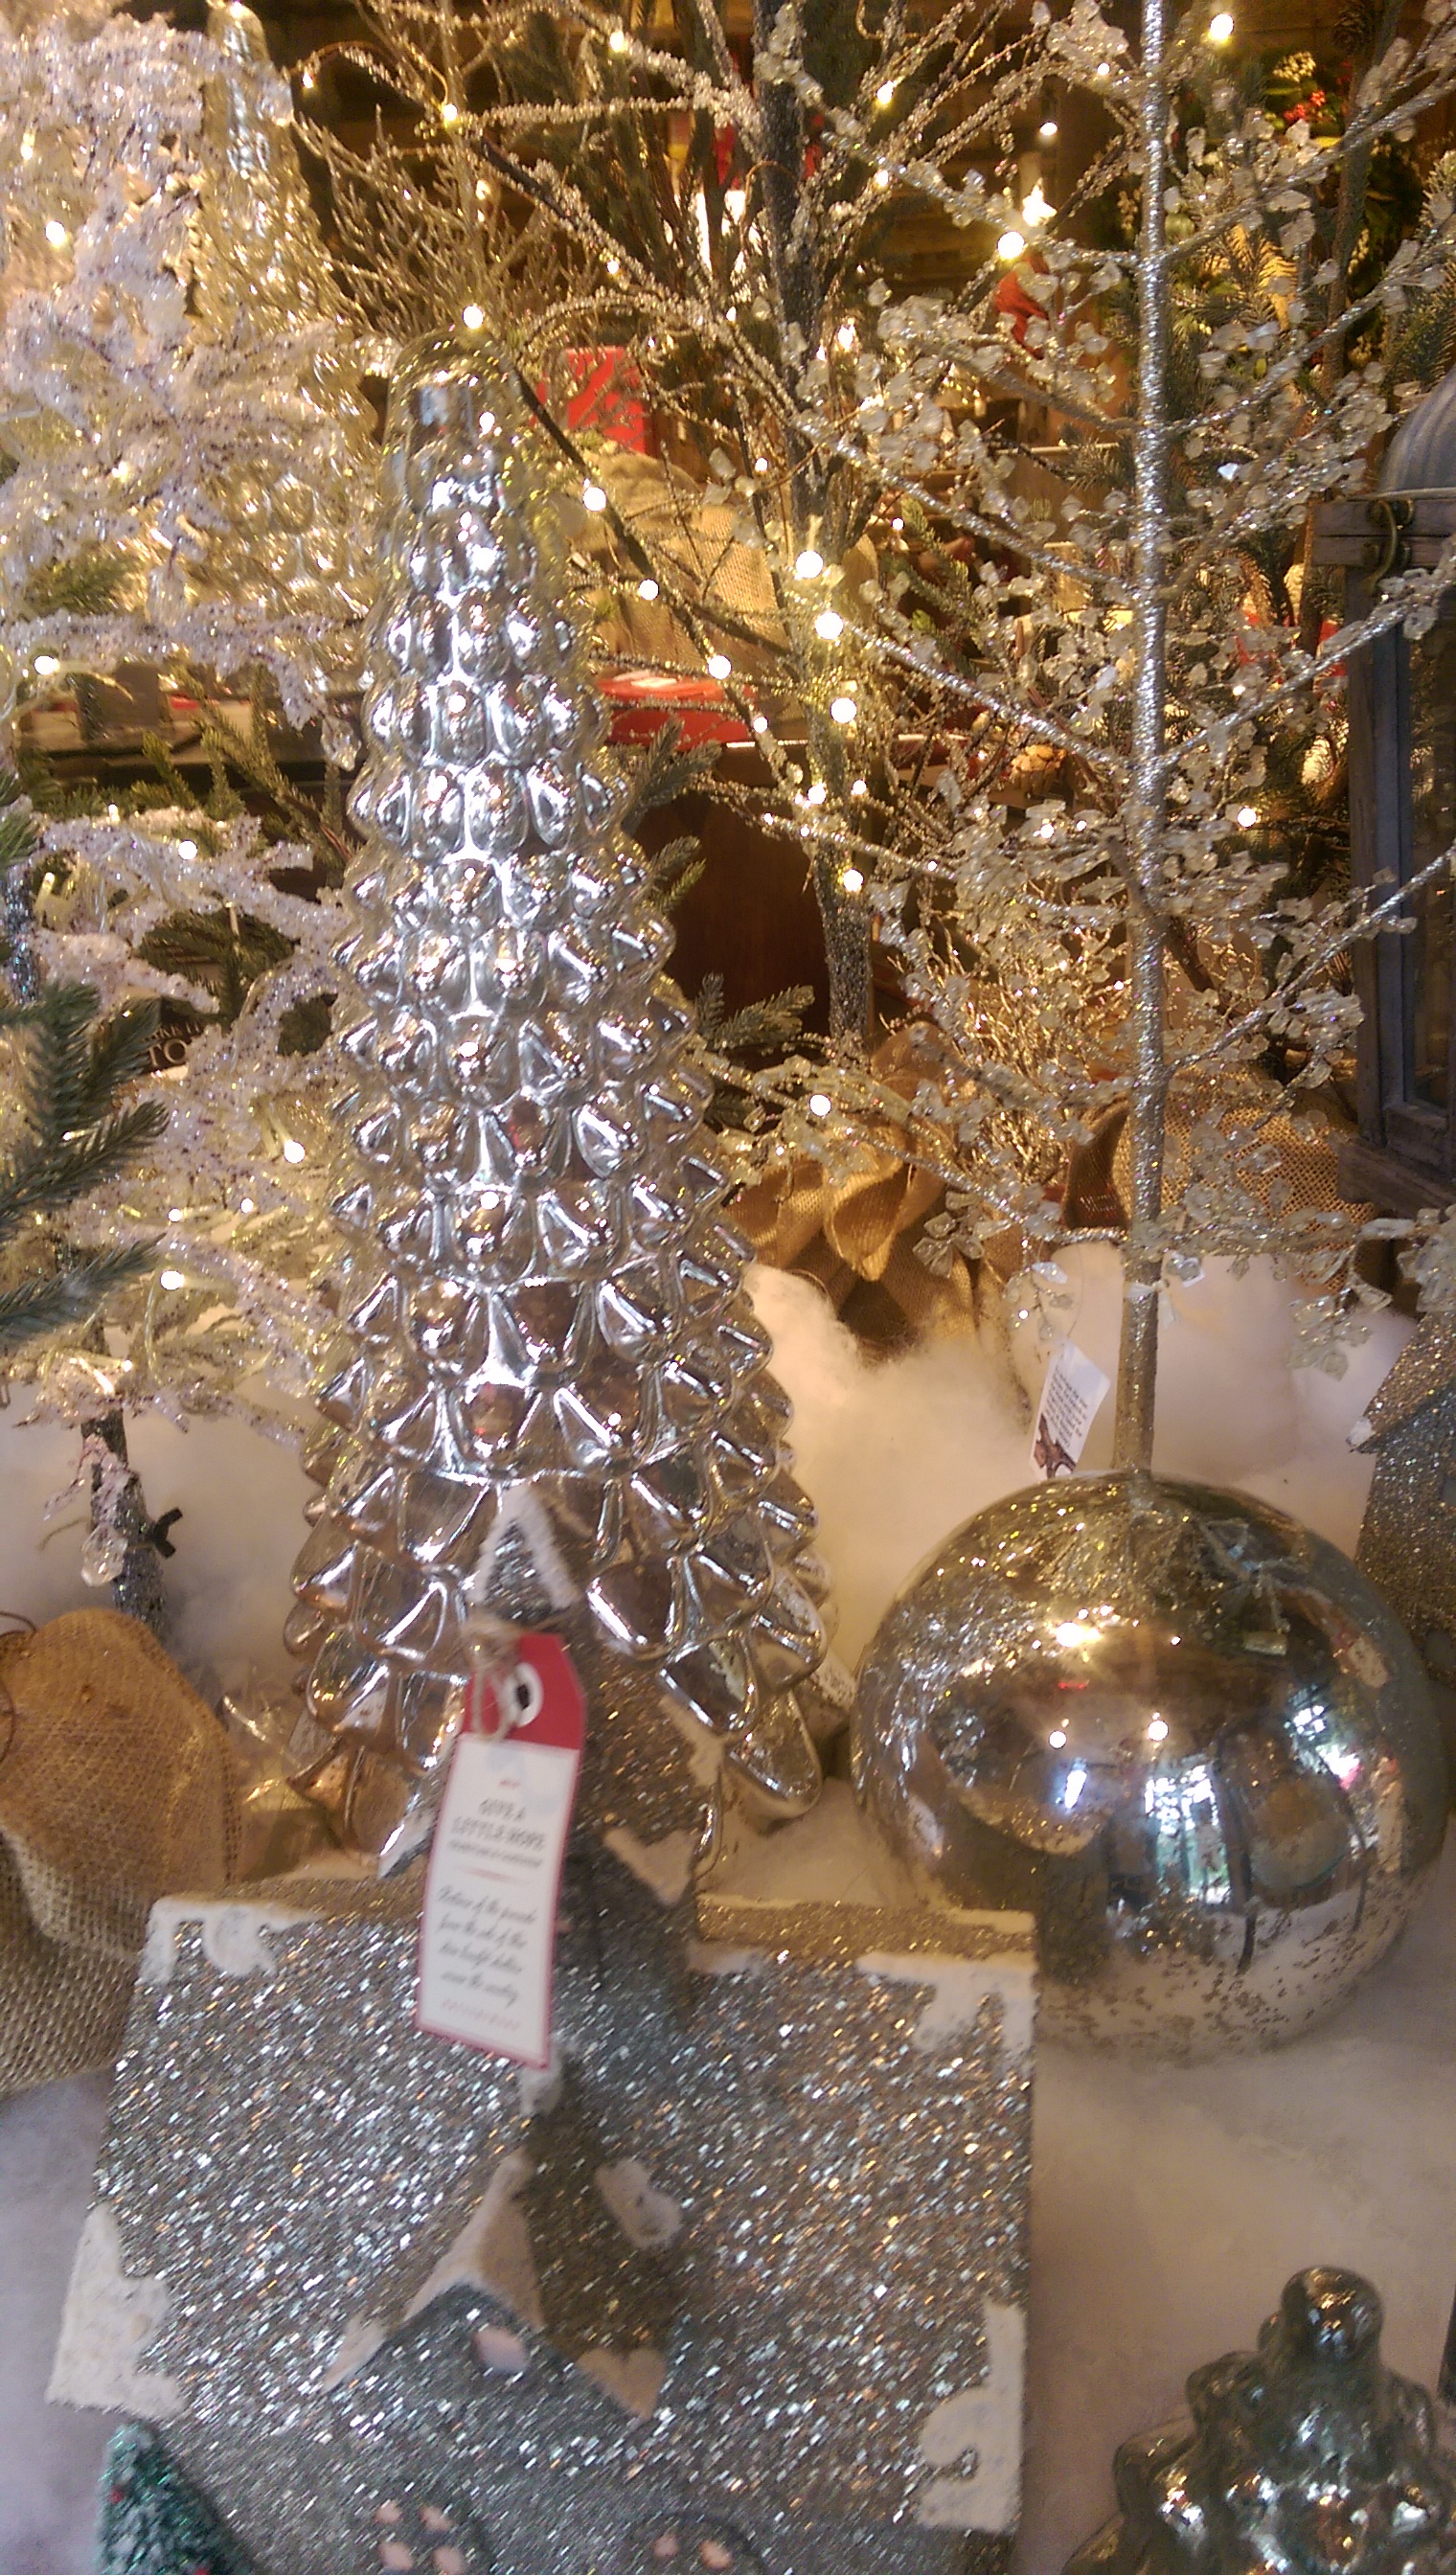 Pottery barn christmas ornaments - The Mercury Glass Christmas Treee Collection Comes In Different Sizes From 17 Inches To 26 Inches Tall Check Your Local Store For Availability